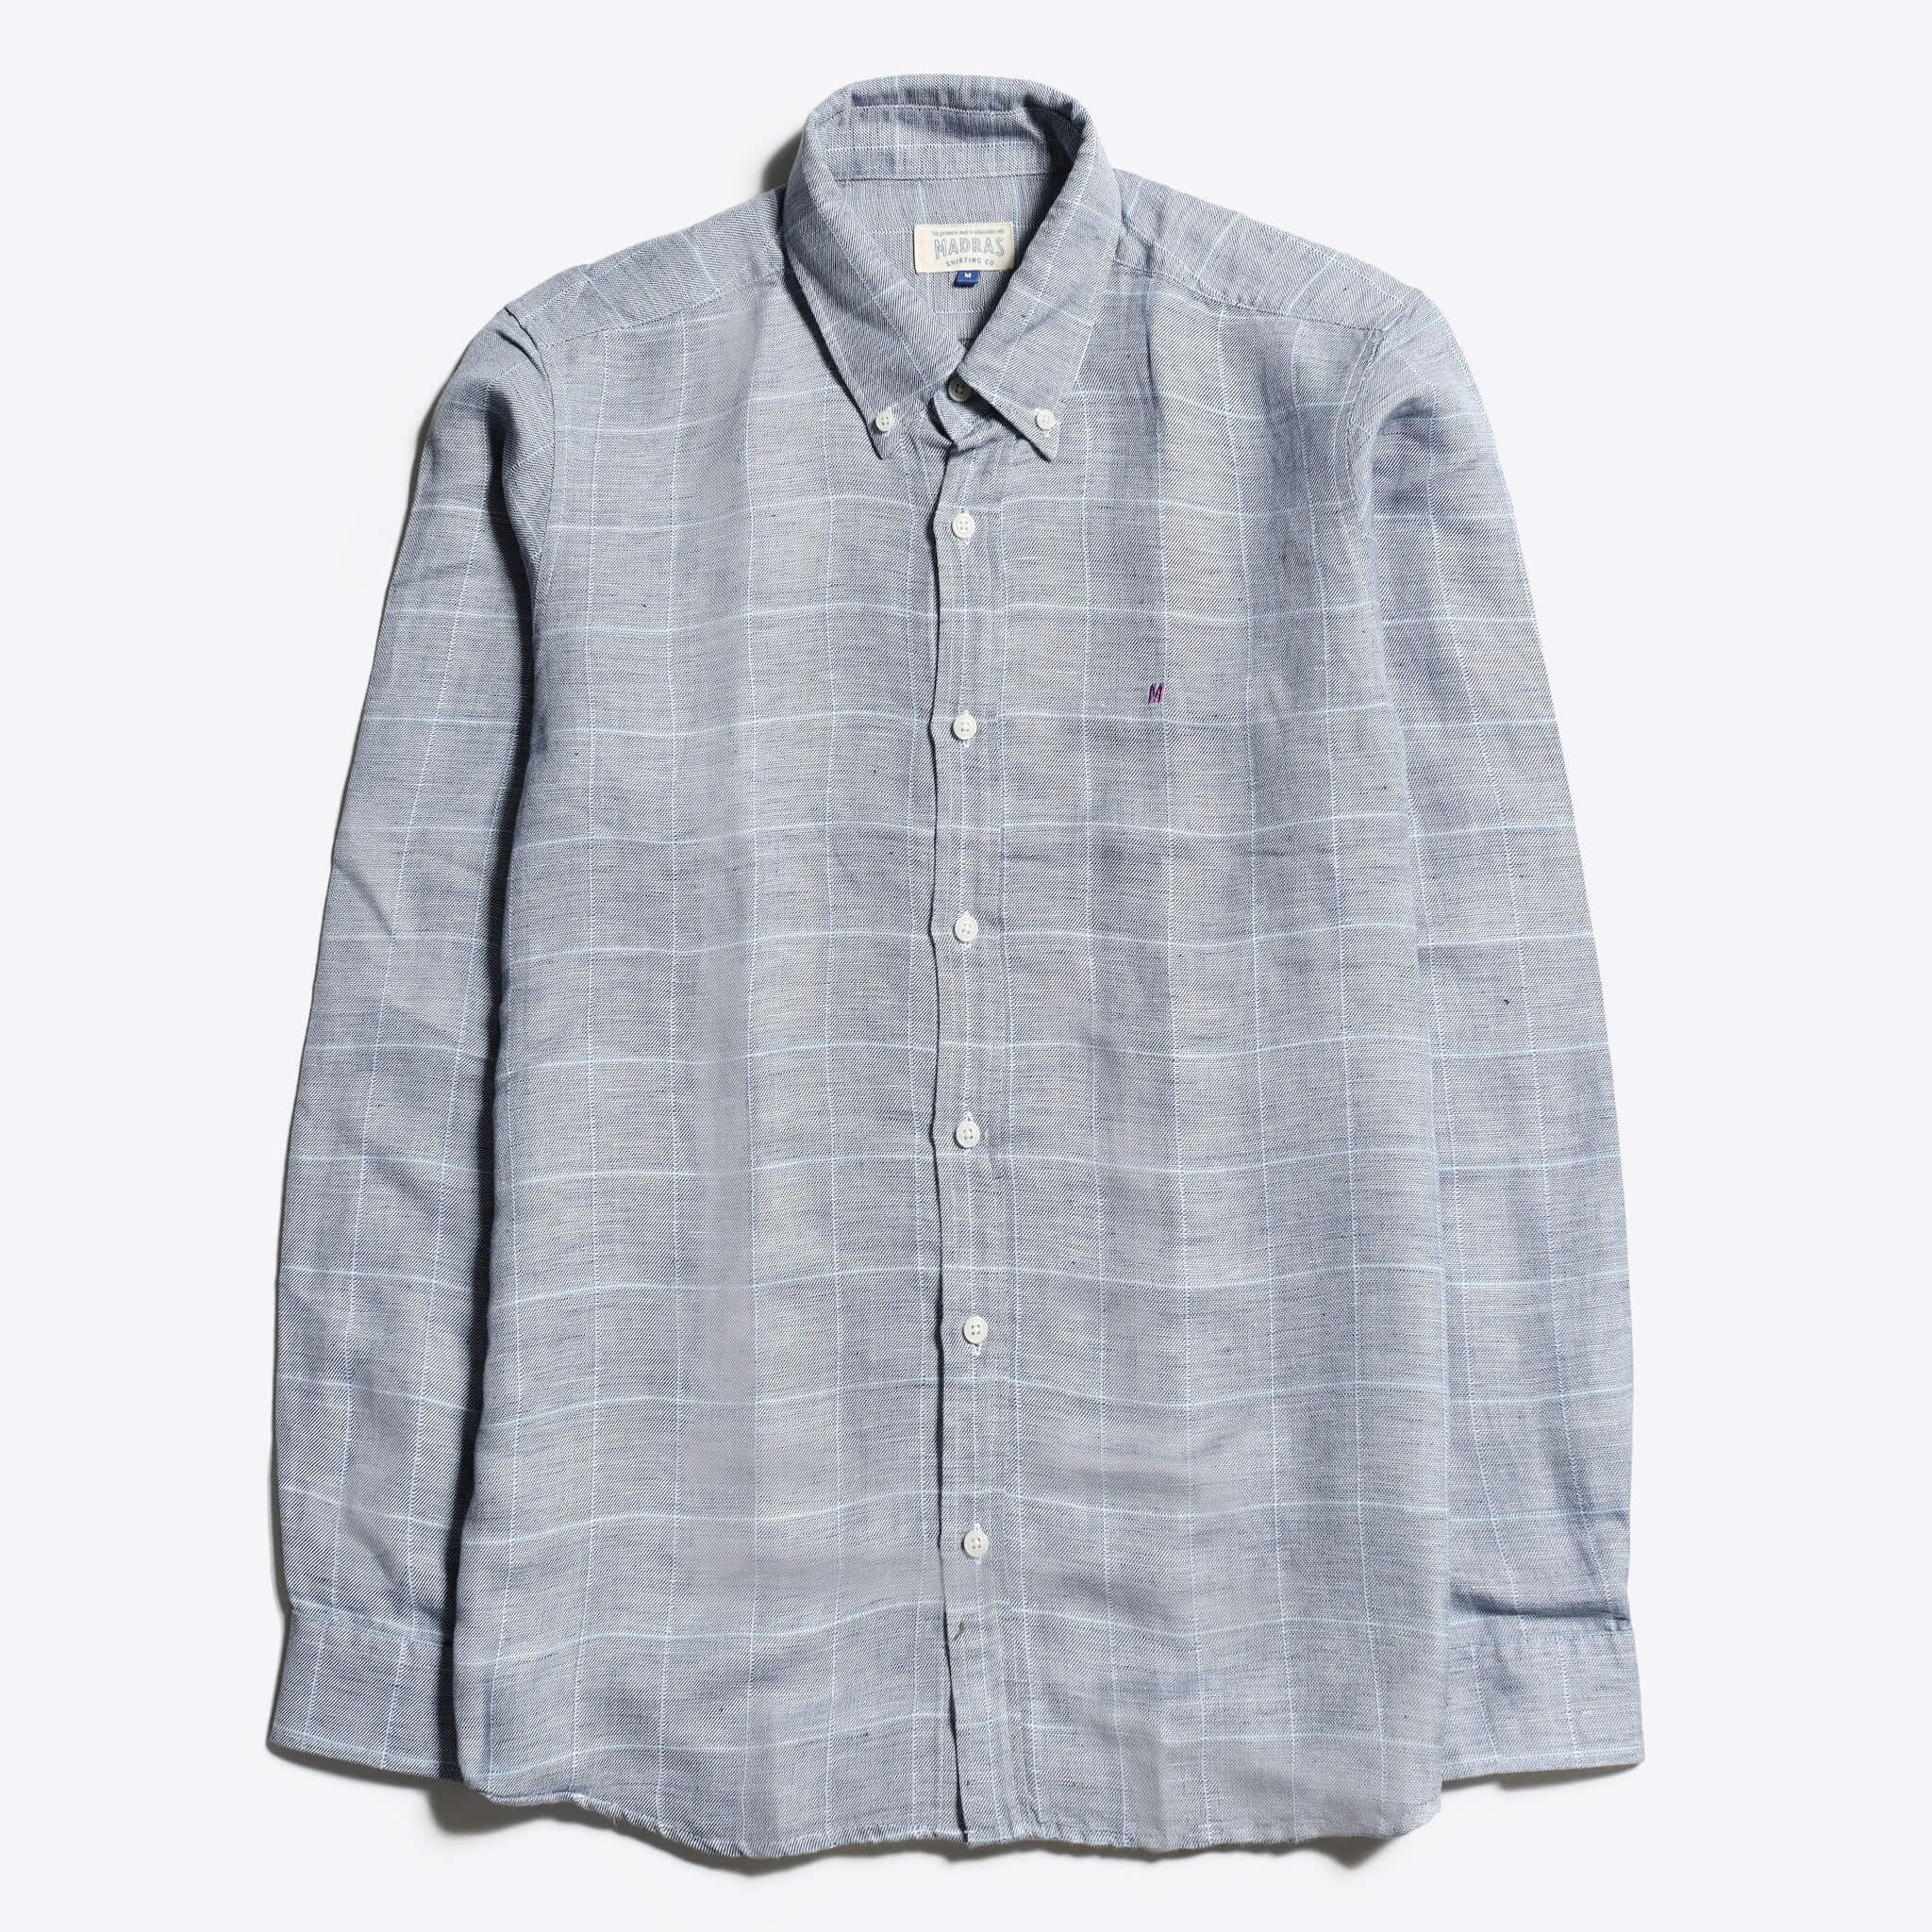 Madras Shirting Co' Mod Button Down Long Sleeve Shirt a Grey Check Linen Up-Cycled Fabric Classic Check Smart Casual